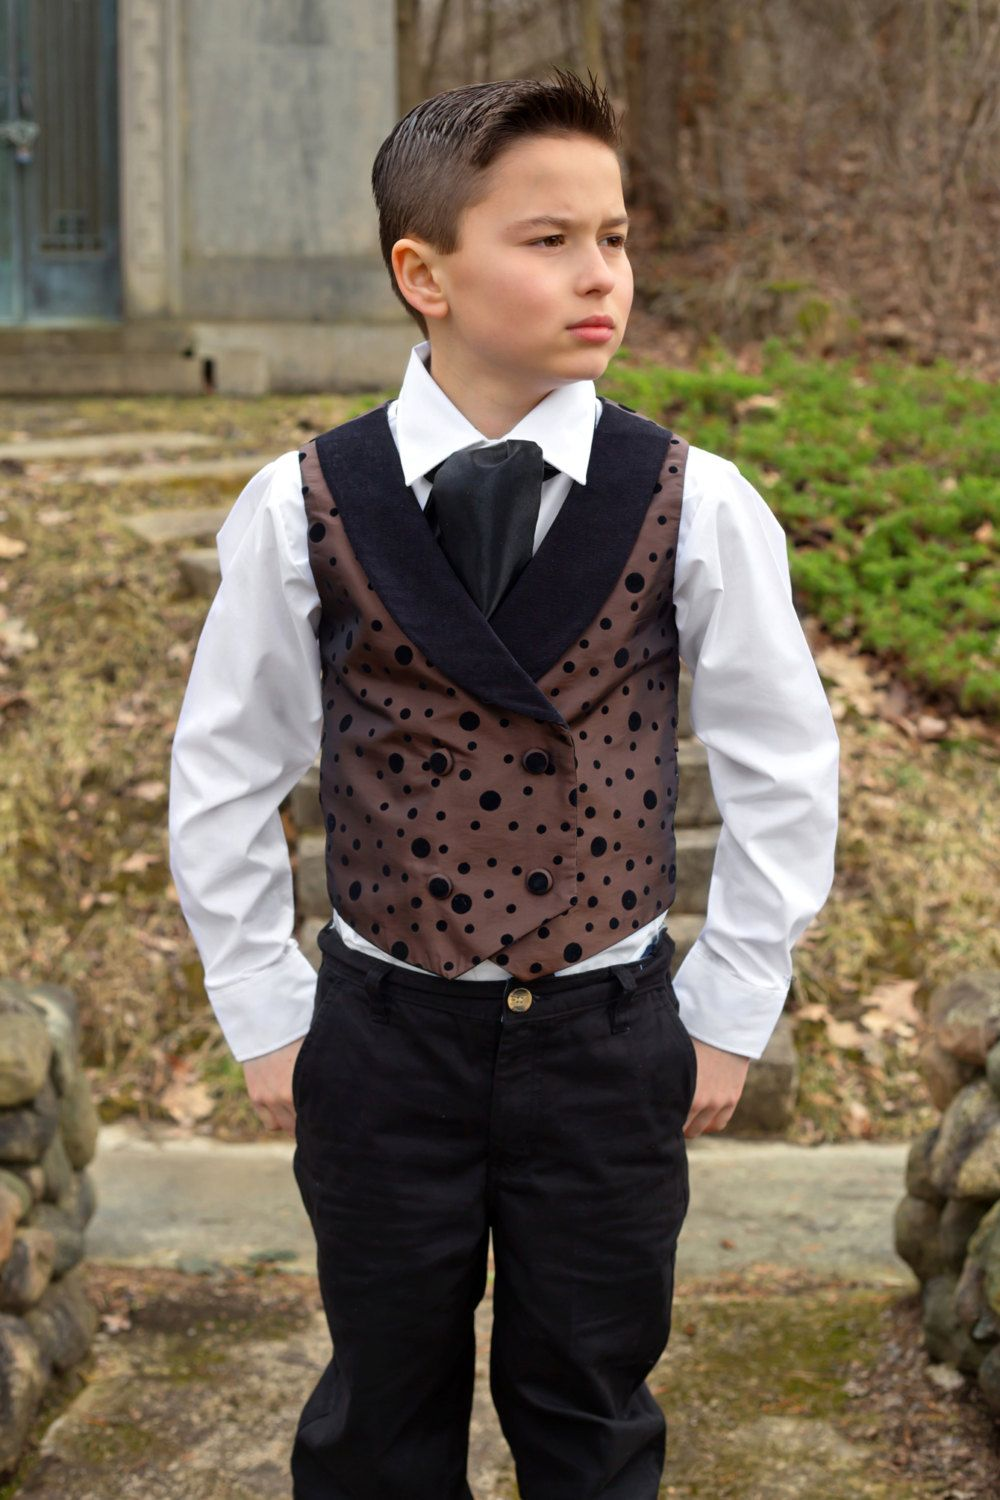 monochrome waistcoat boys vests made to order age 6 months to age 4 Viking waistcoat boys wedding outfit specail occasion